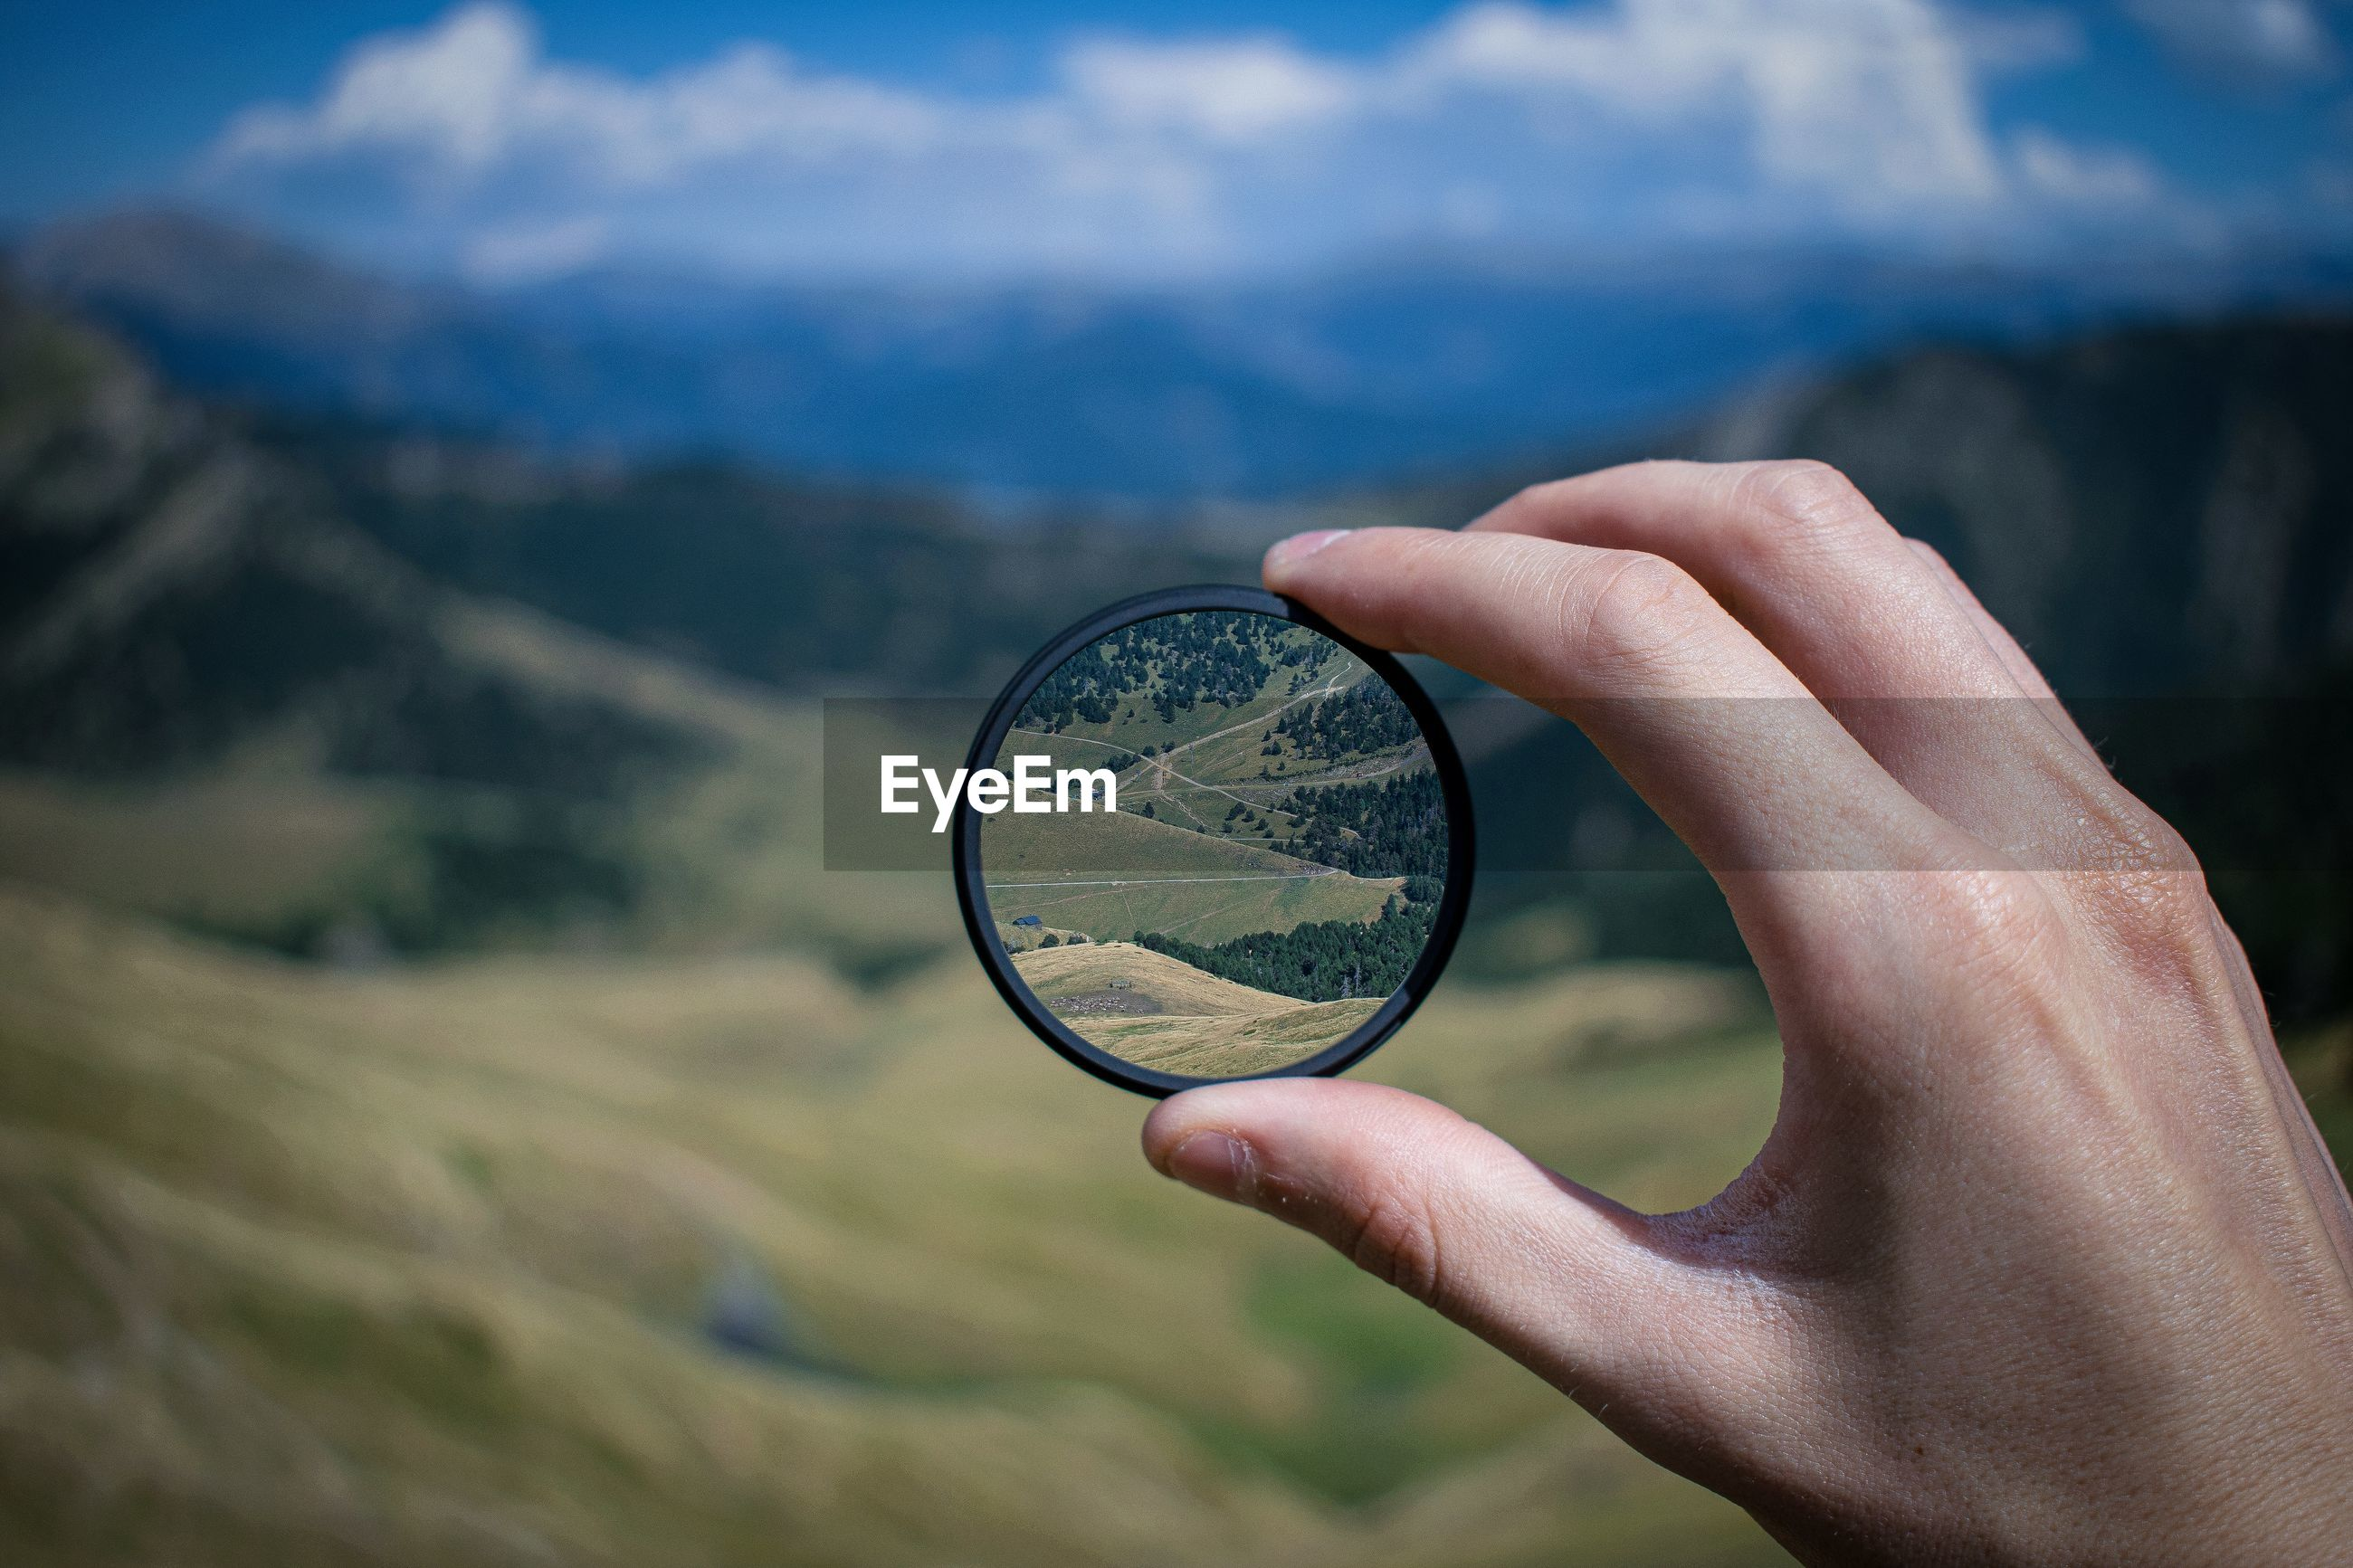 CLOSE-UP OF HAND HOLDING EYEGLASSES AGAINST MOUNTAINS